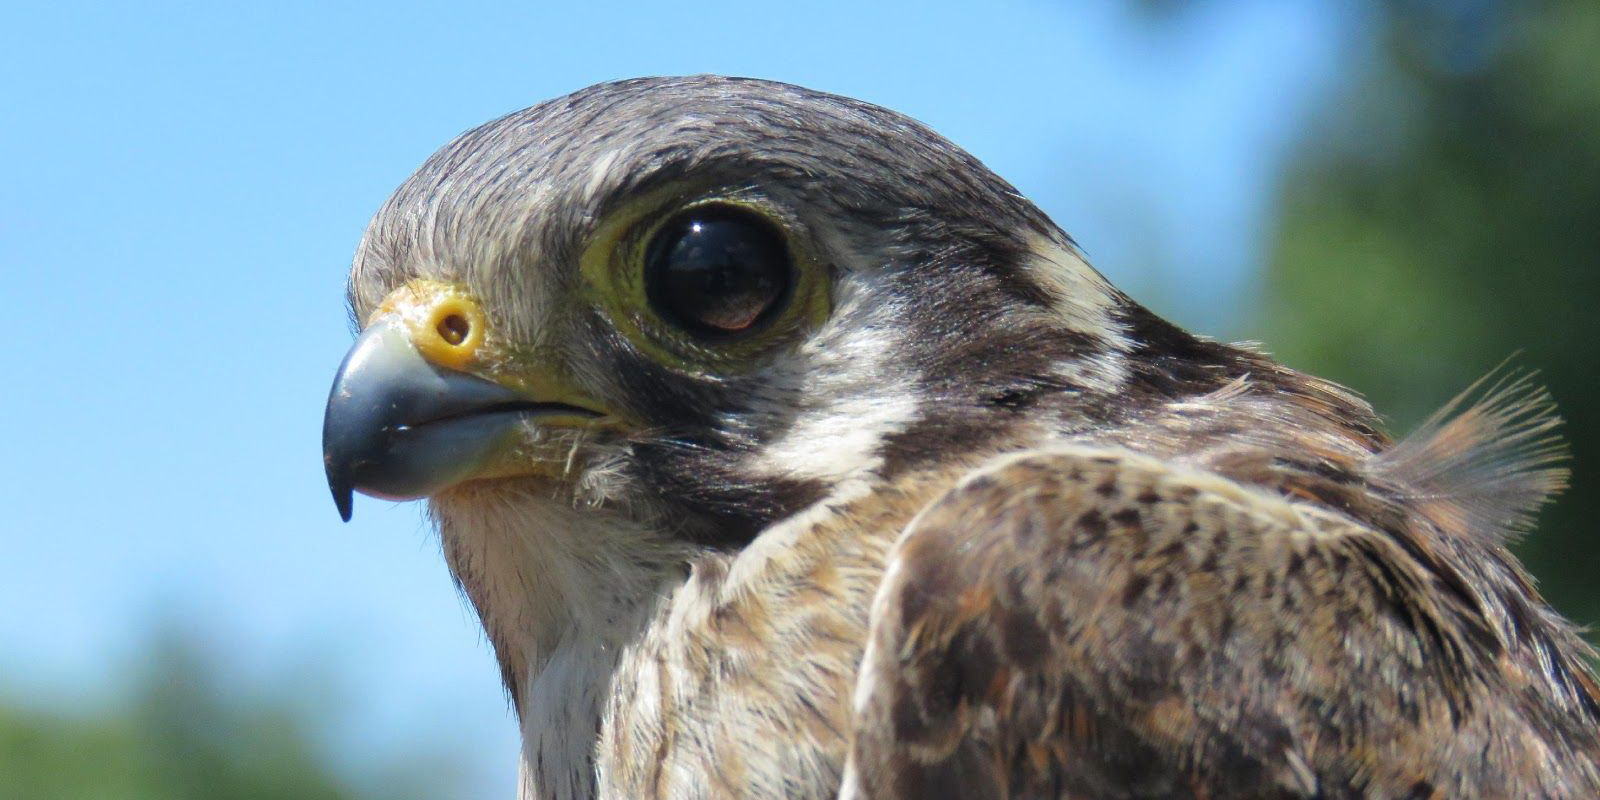 Close up of adult kestrel bird